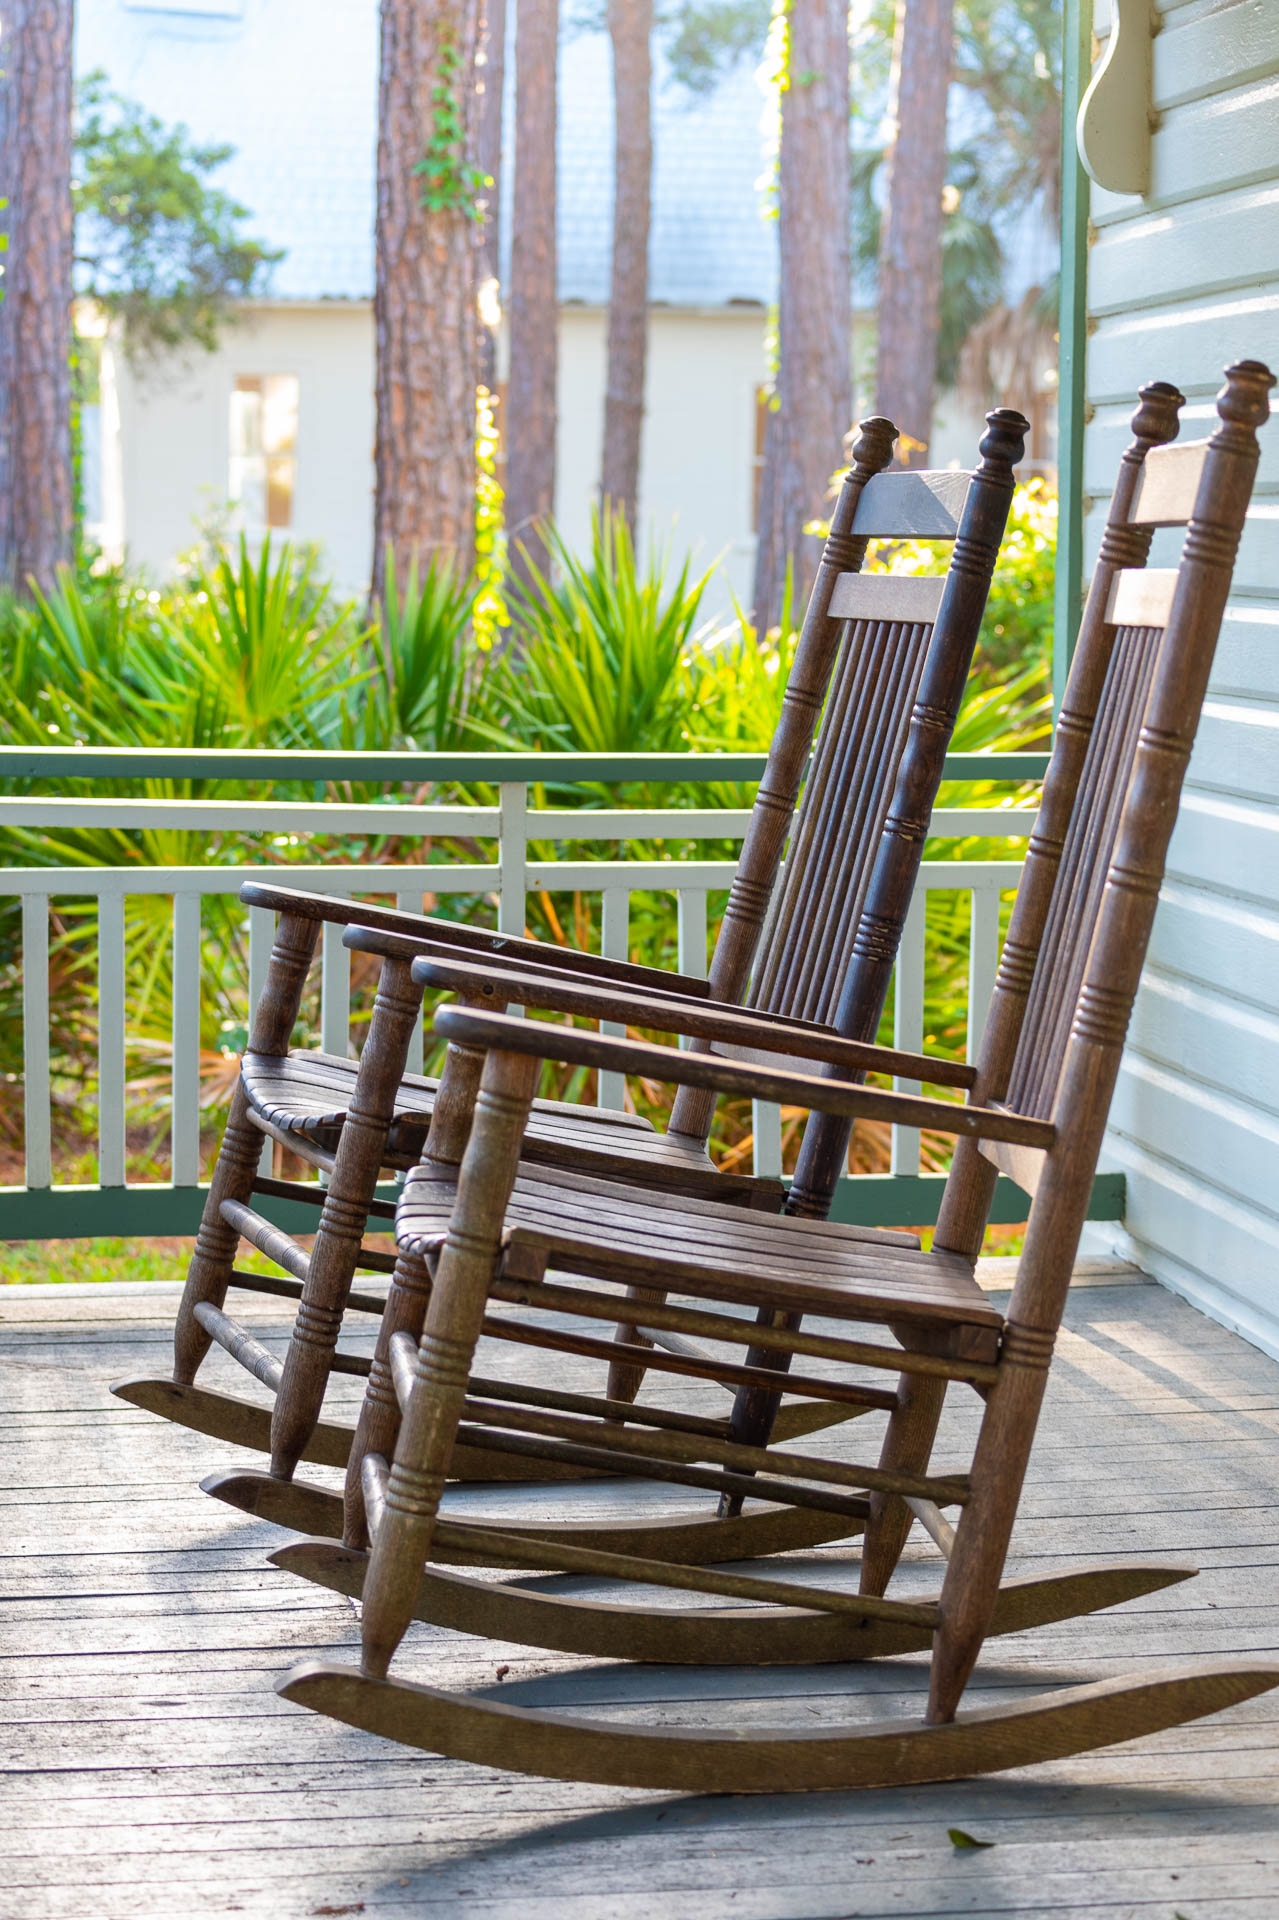 Rocking chairs on Plant Sumner Porch